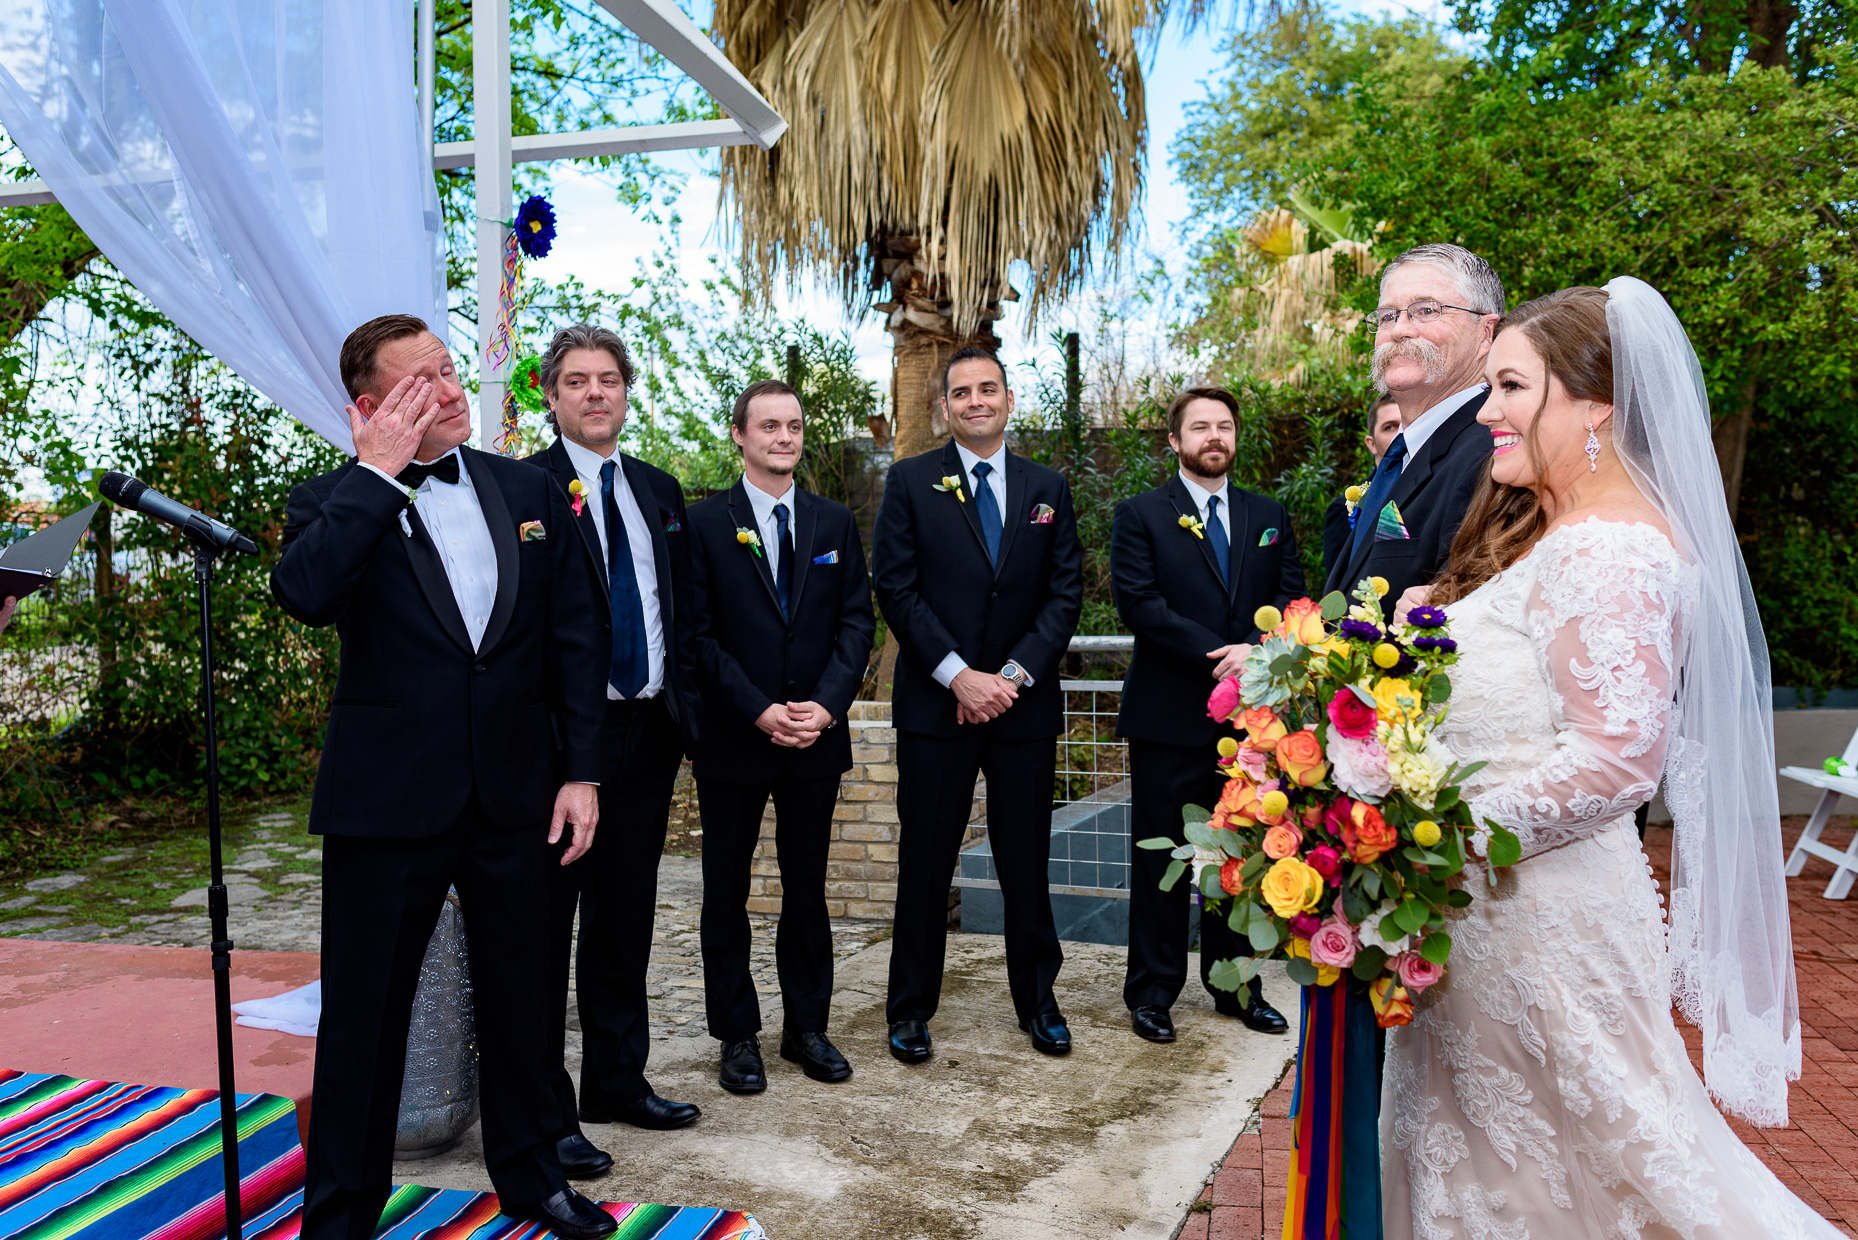 Austin-Wedding-Photographers-ceremony-groom-cry-San-Antonio-zaza-gardens